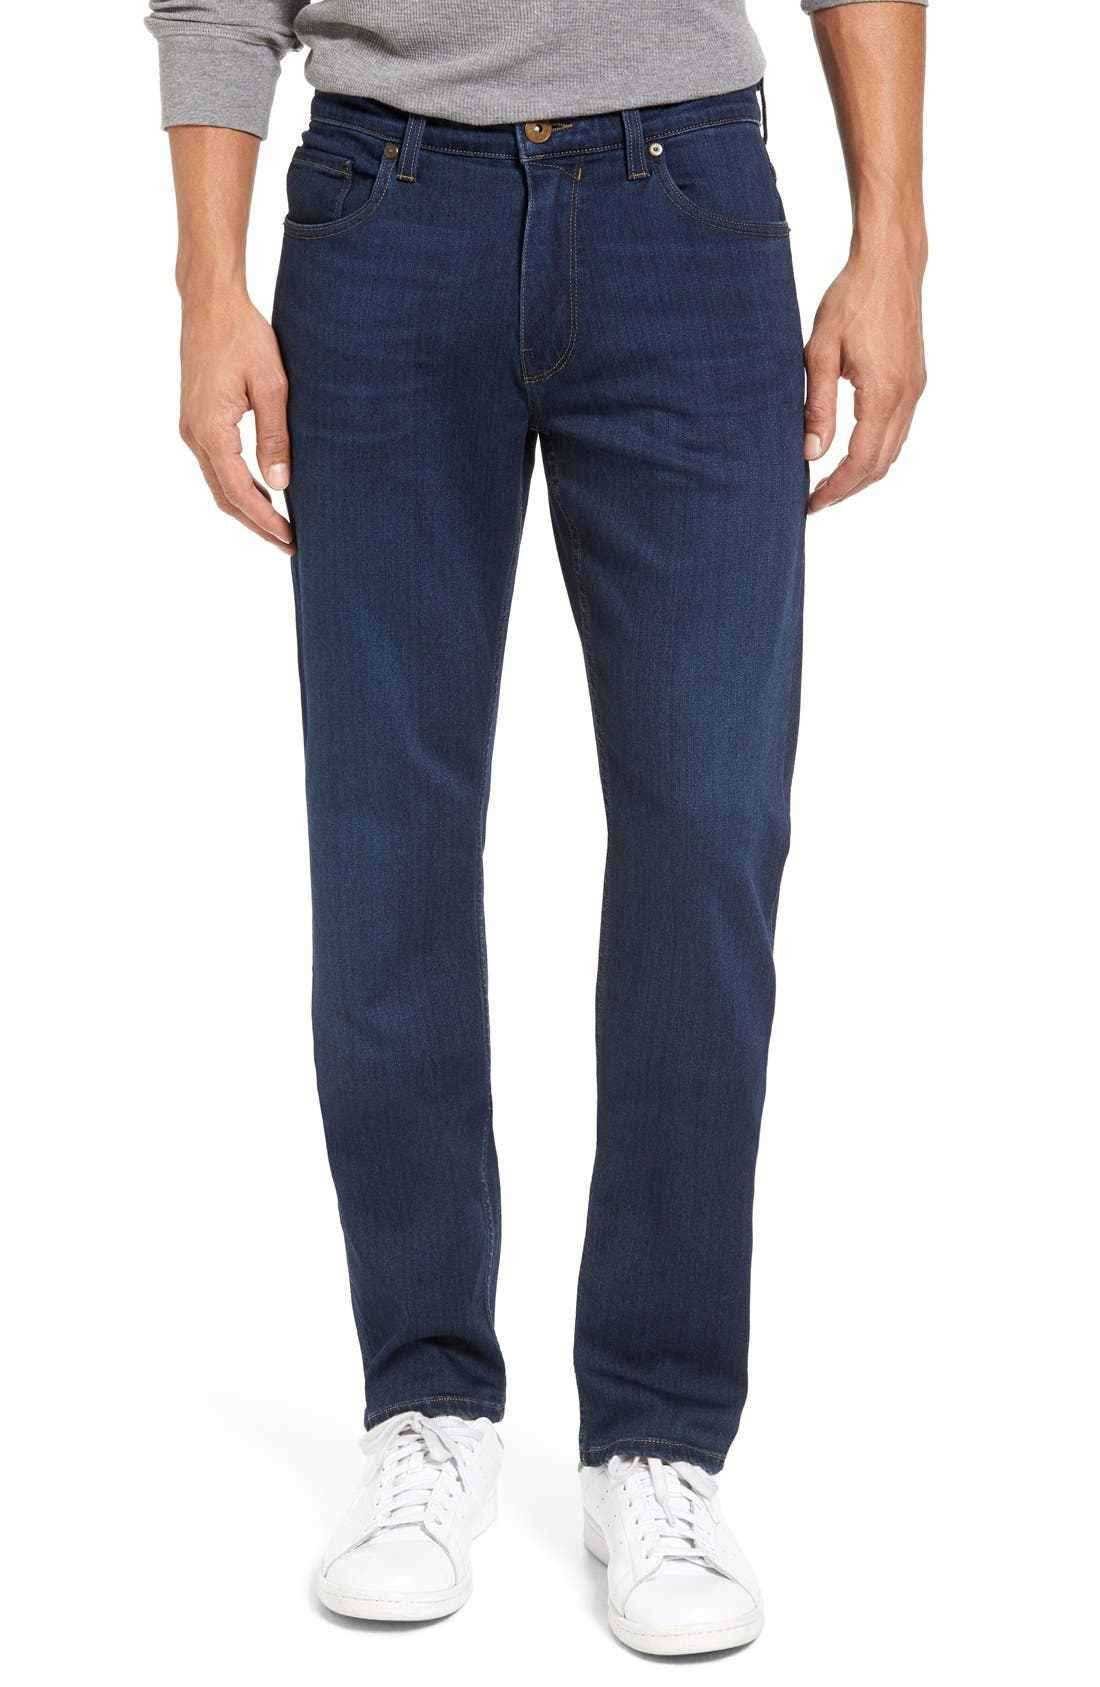 PAIGE Transcend - Federal Slim Straight Leg Jeans (Scott)